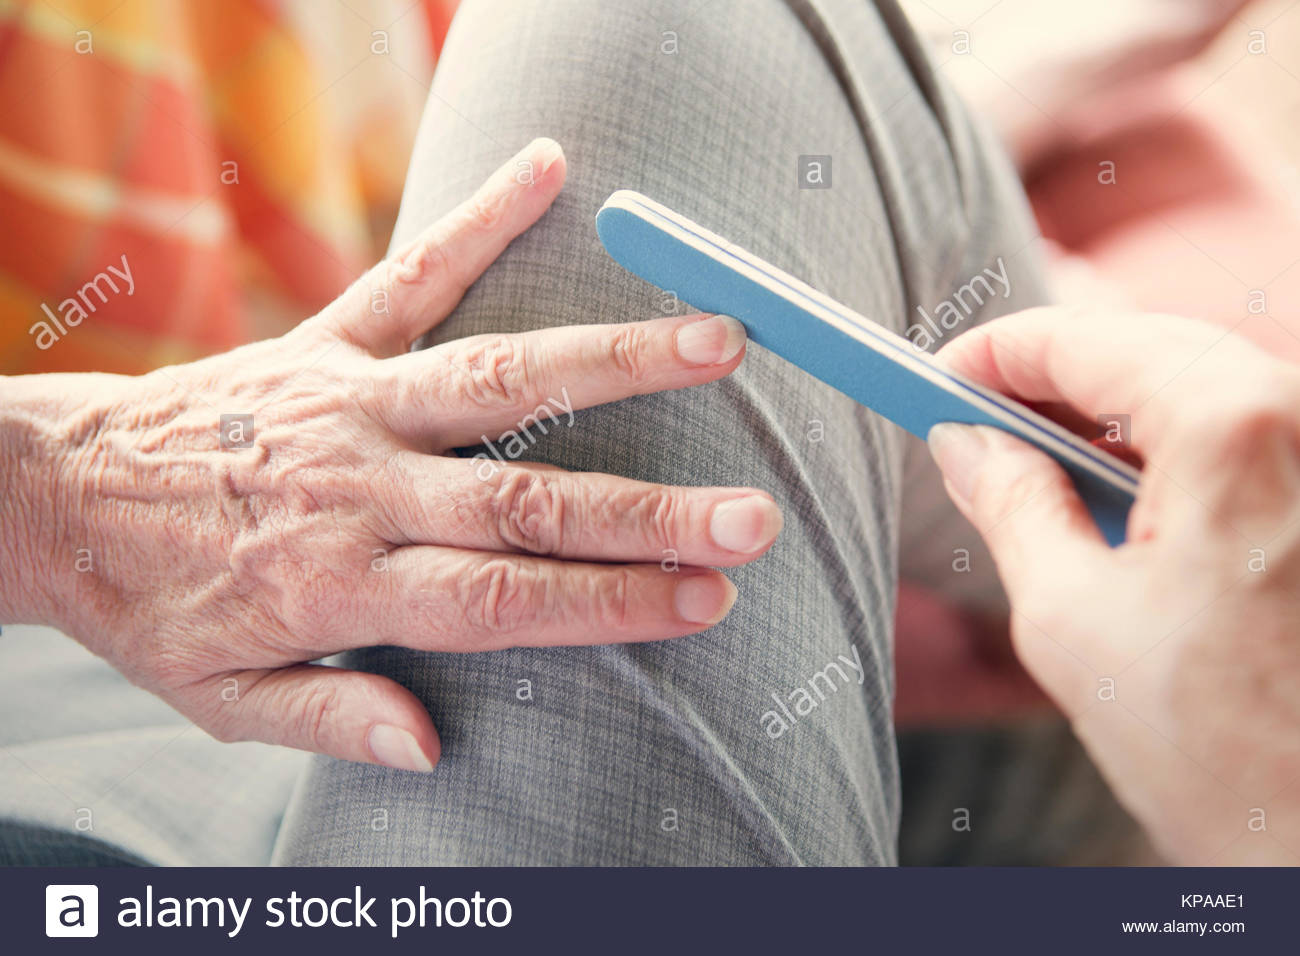 closeup of woman's hand with nailfile - Stock Image